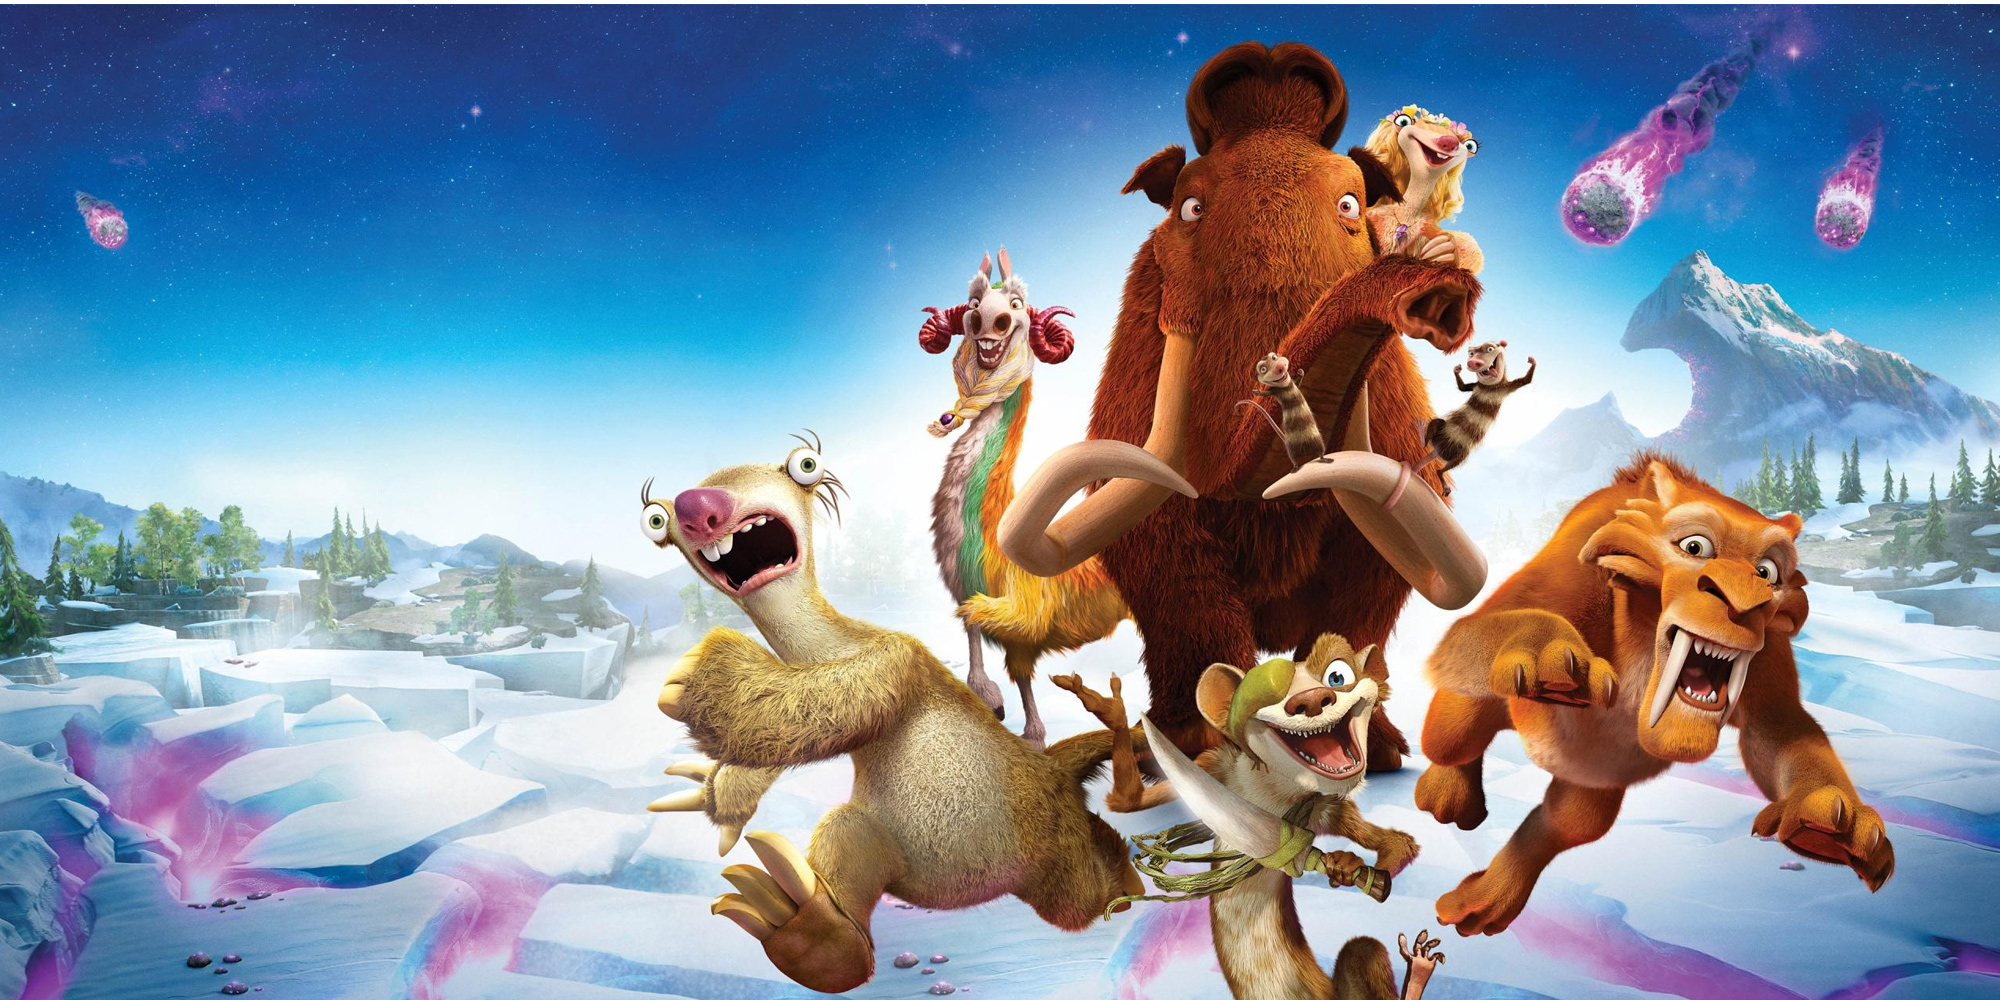 Ice Age: Collision Course - Header Image